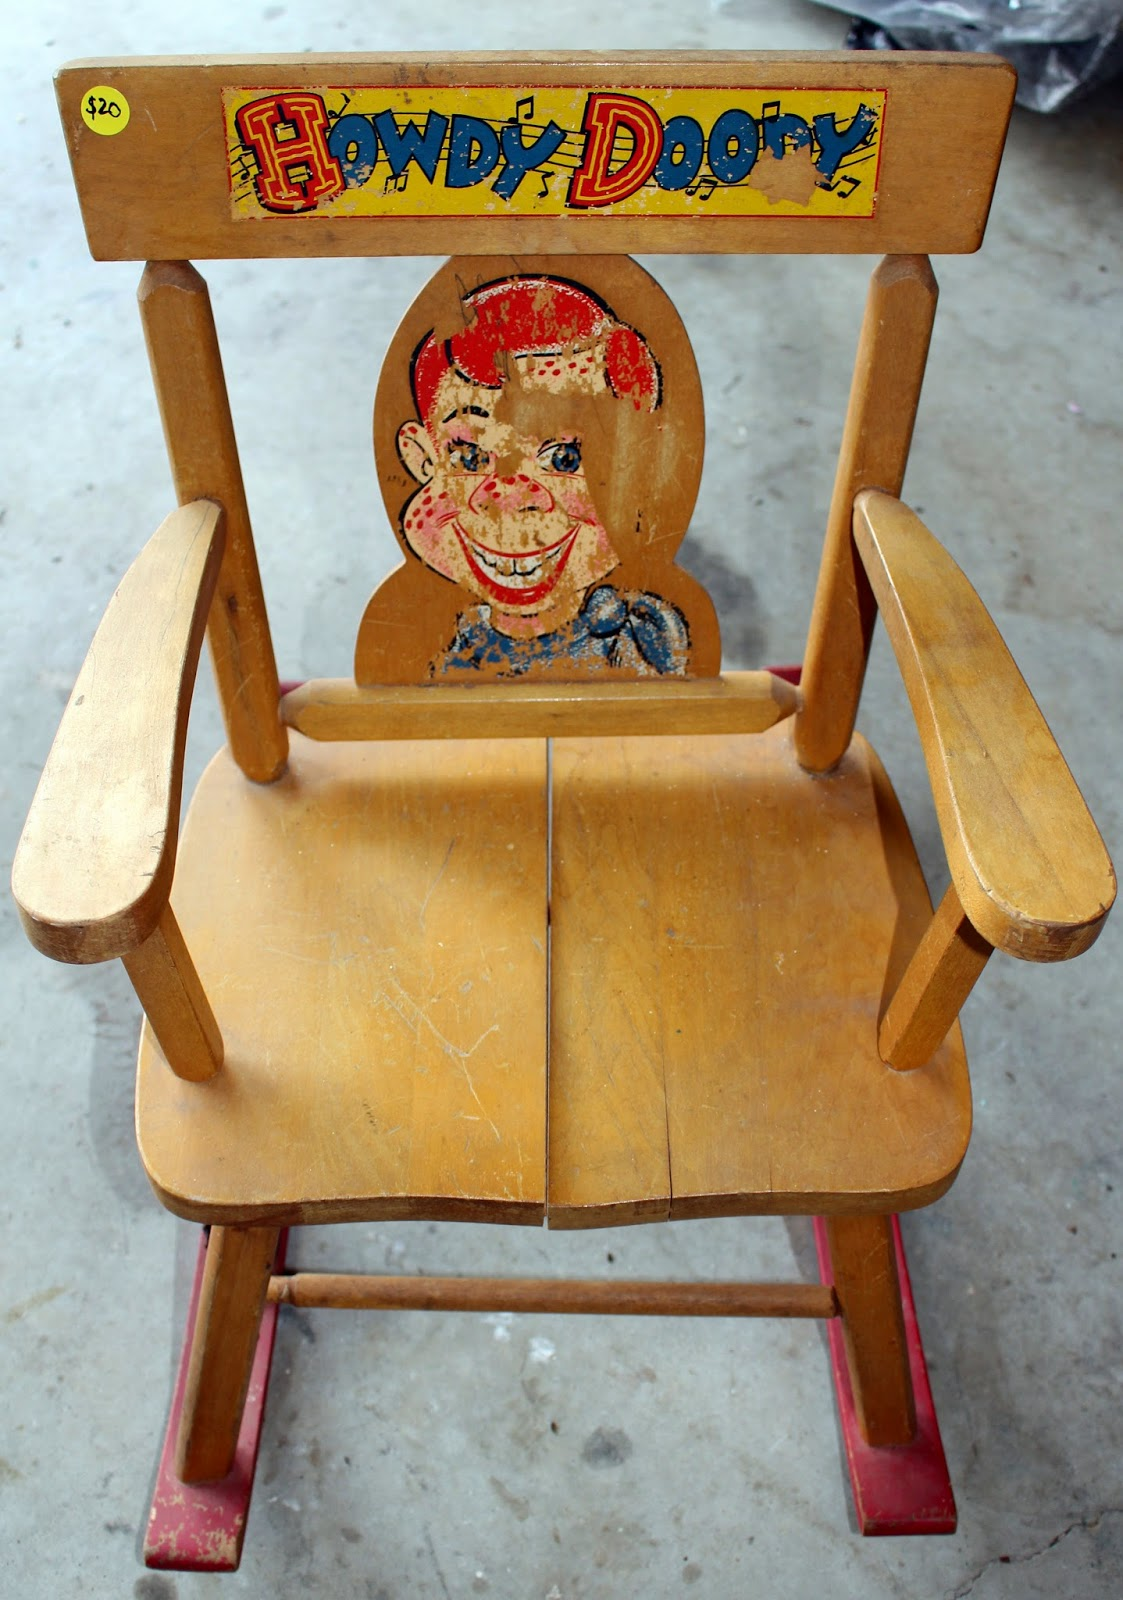 Howdy Doody Rocking Chair Home Depot Outdoor Chairs Harris Sisters Girltalk One Man 39s Trash Vintage Child